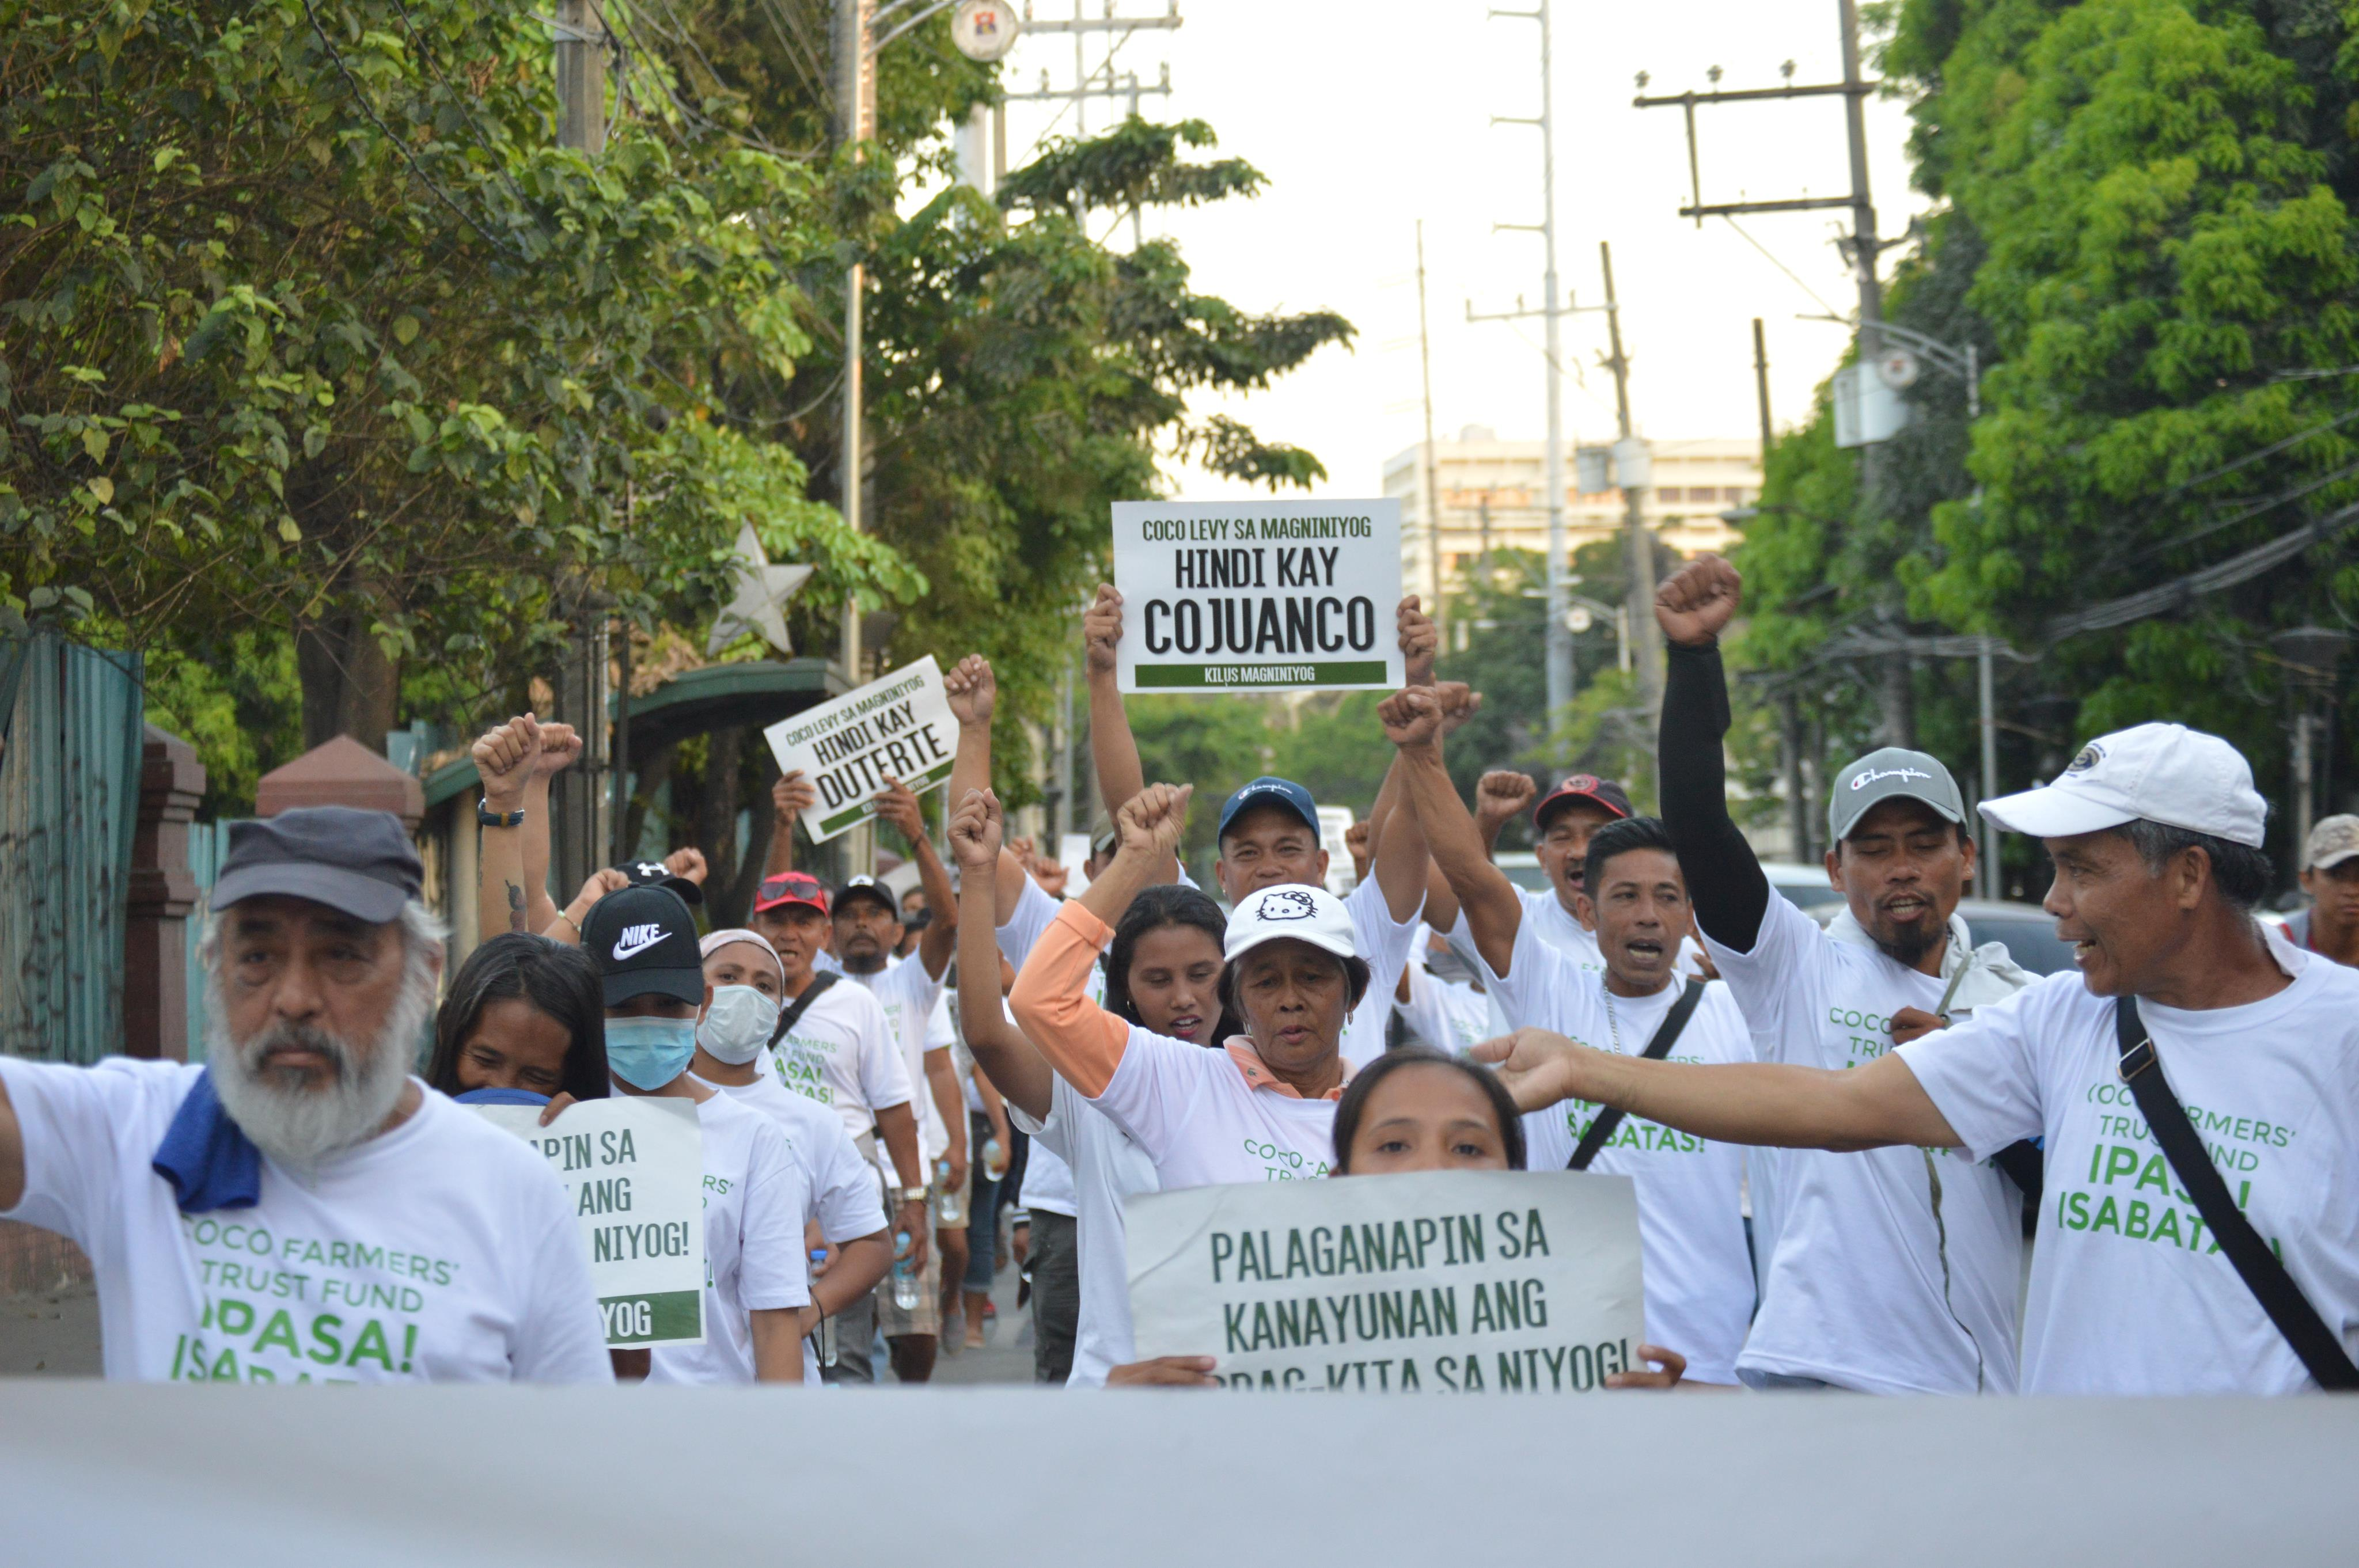 TRUST FUND. Coconut farmers marched from the Philippine Coconut Authority to Mendiola to protest the low prices of copra and to call for the passage of their version of the Coconut Farmers' Trust Fund. Photo courtesy of Kilus Magniniyog